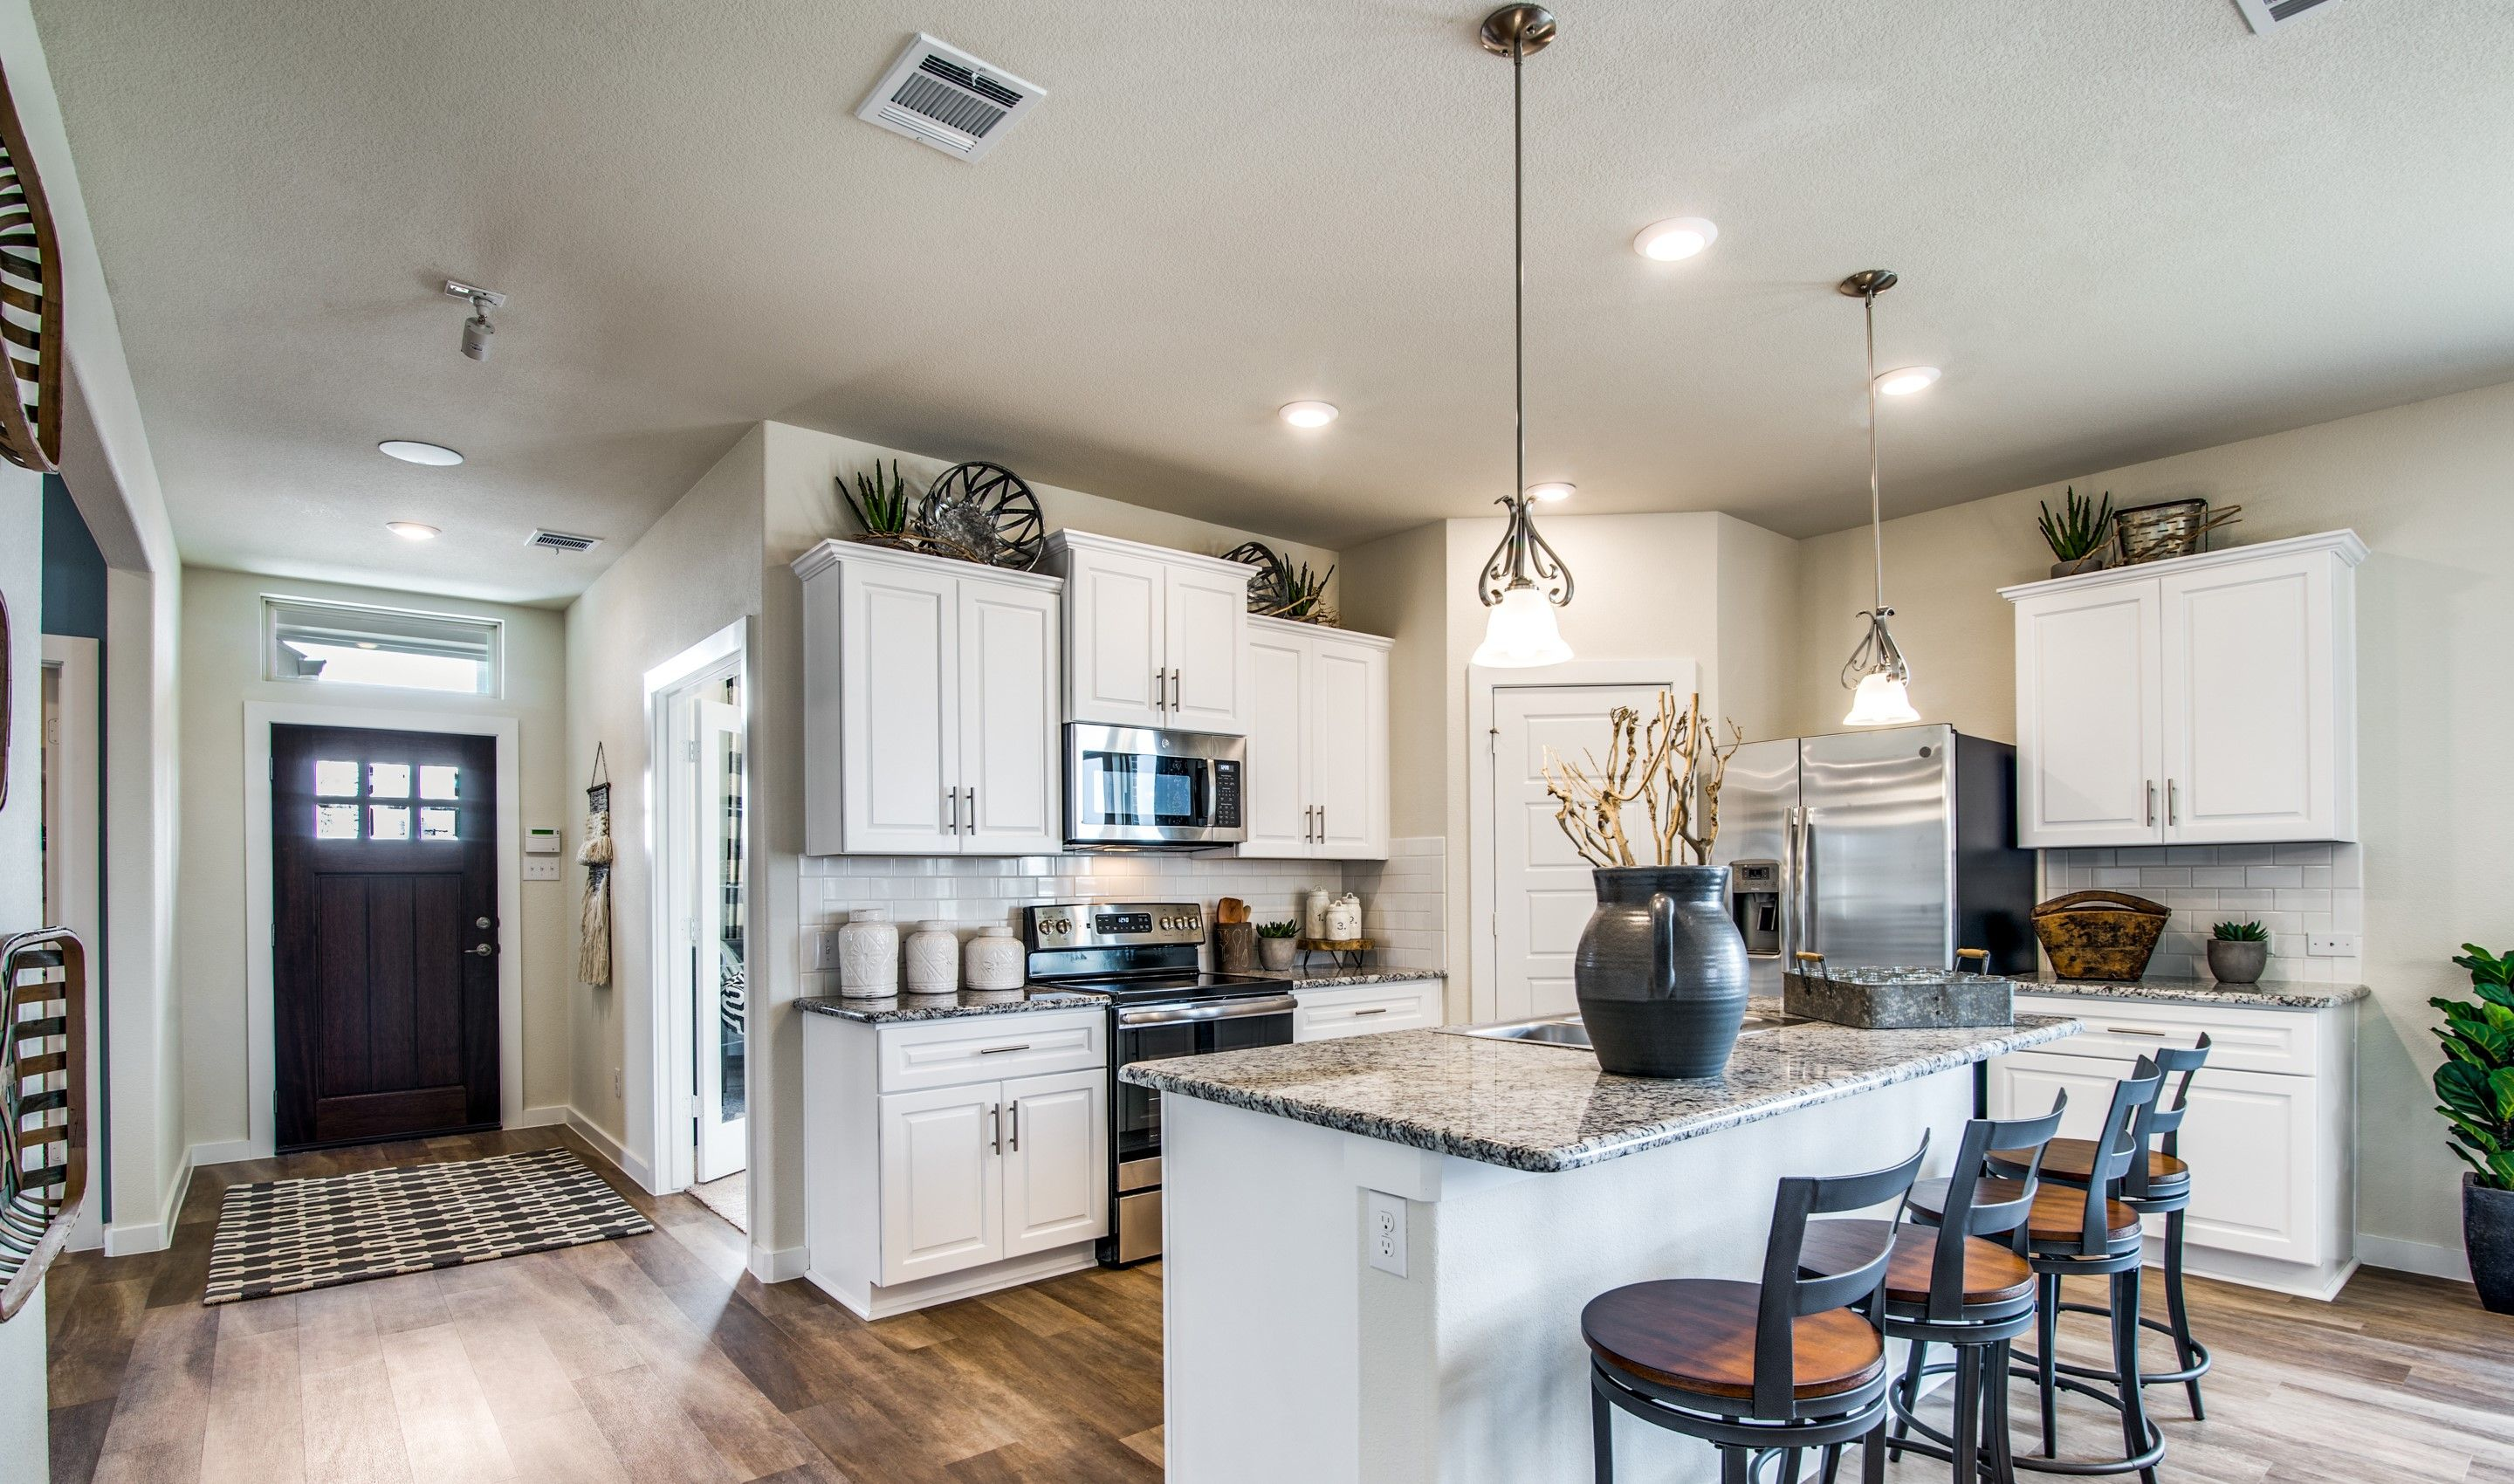 Kitchen featured in the Birkdale II By K. Hovnanian® Homes in Dallas, TX